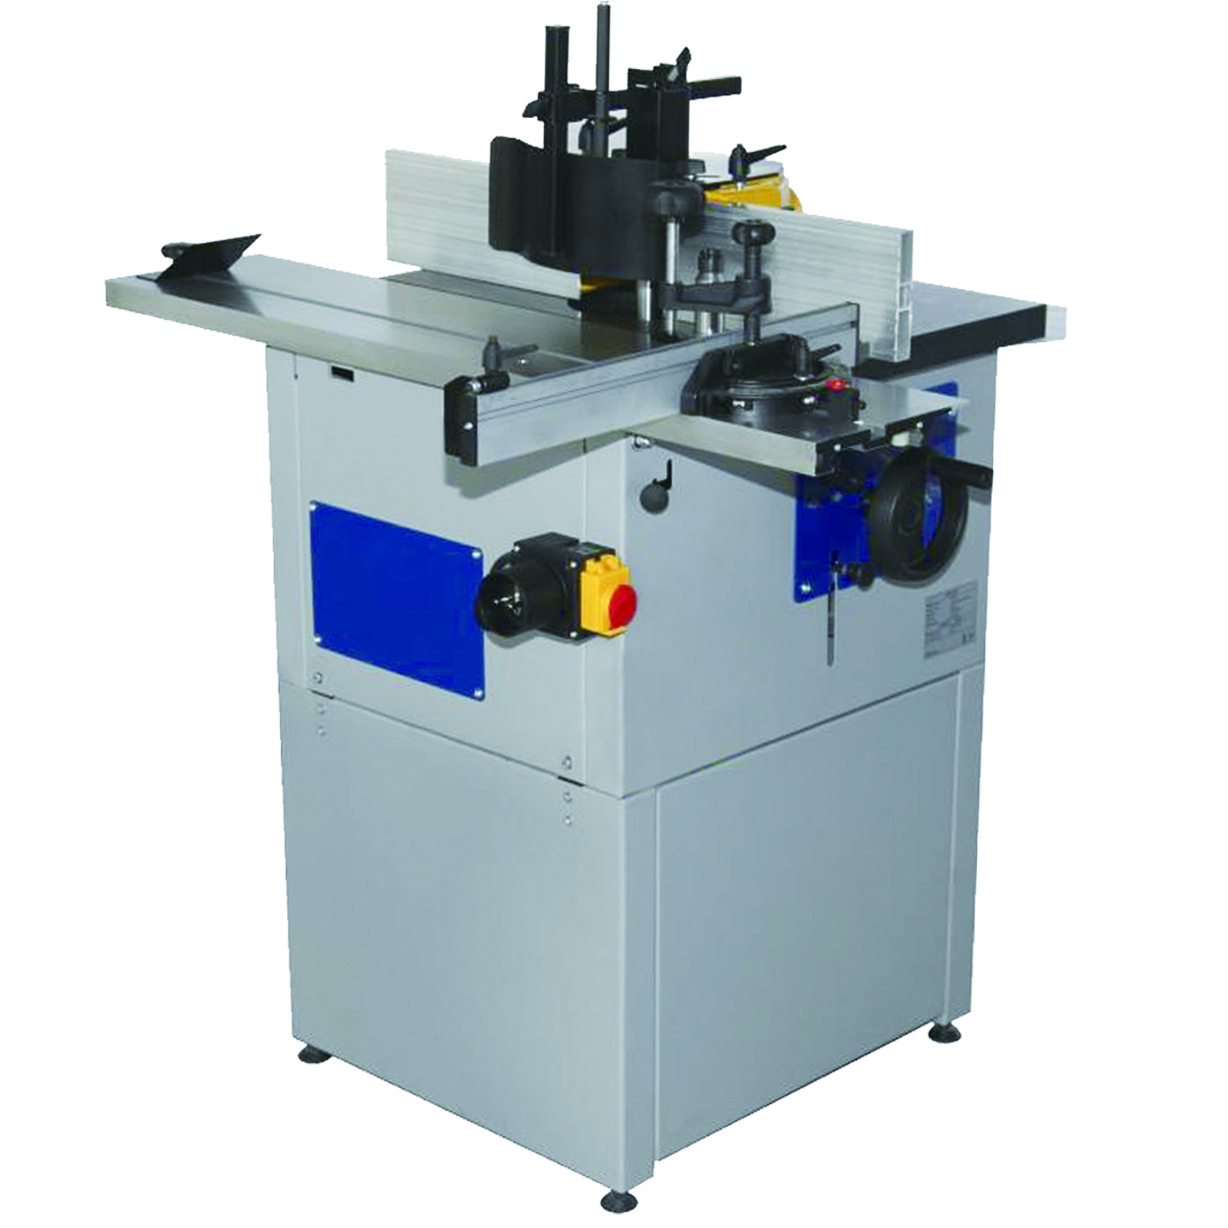 Wood Shaper Router Table Machine - Buy Wood Shaper Machine,Wood Rounter  Table,Rounter Table Product on Alibaba com